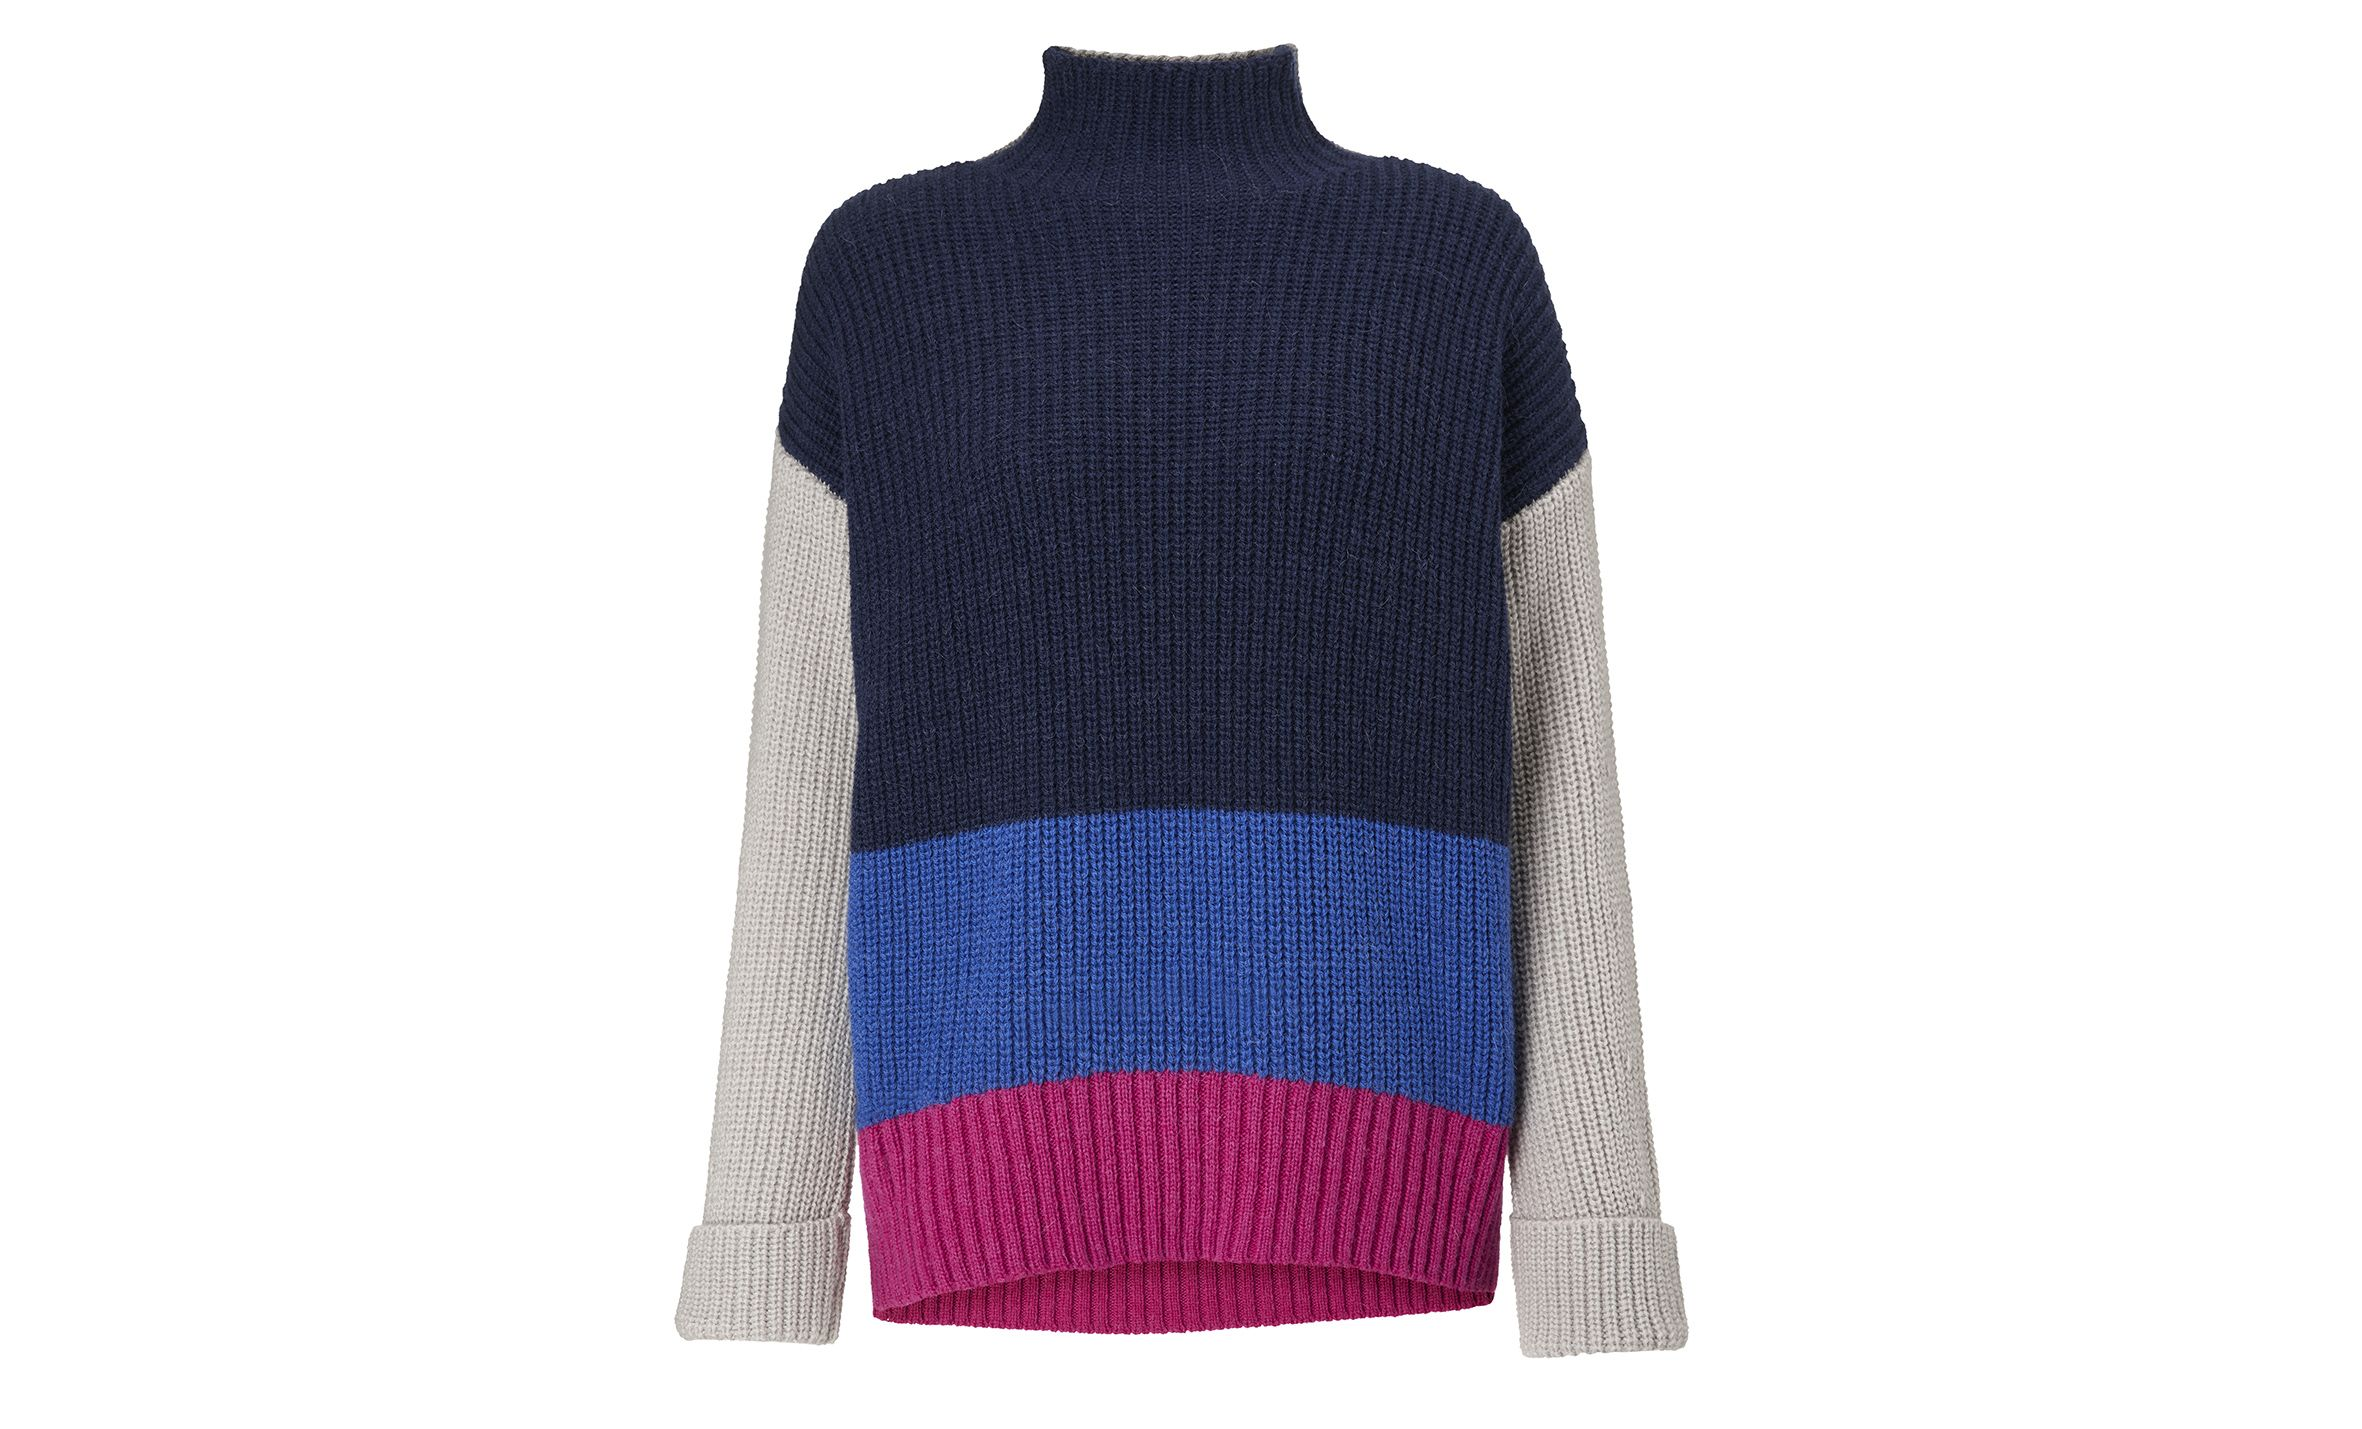 f67574ae246 10 Best Jumpers For Autumn – Look Cosy And Stylish In The Latest Knitwear